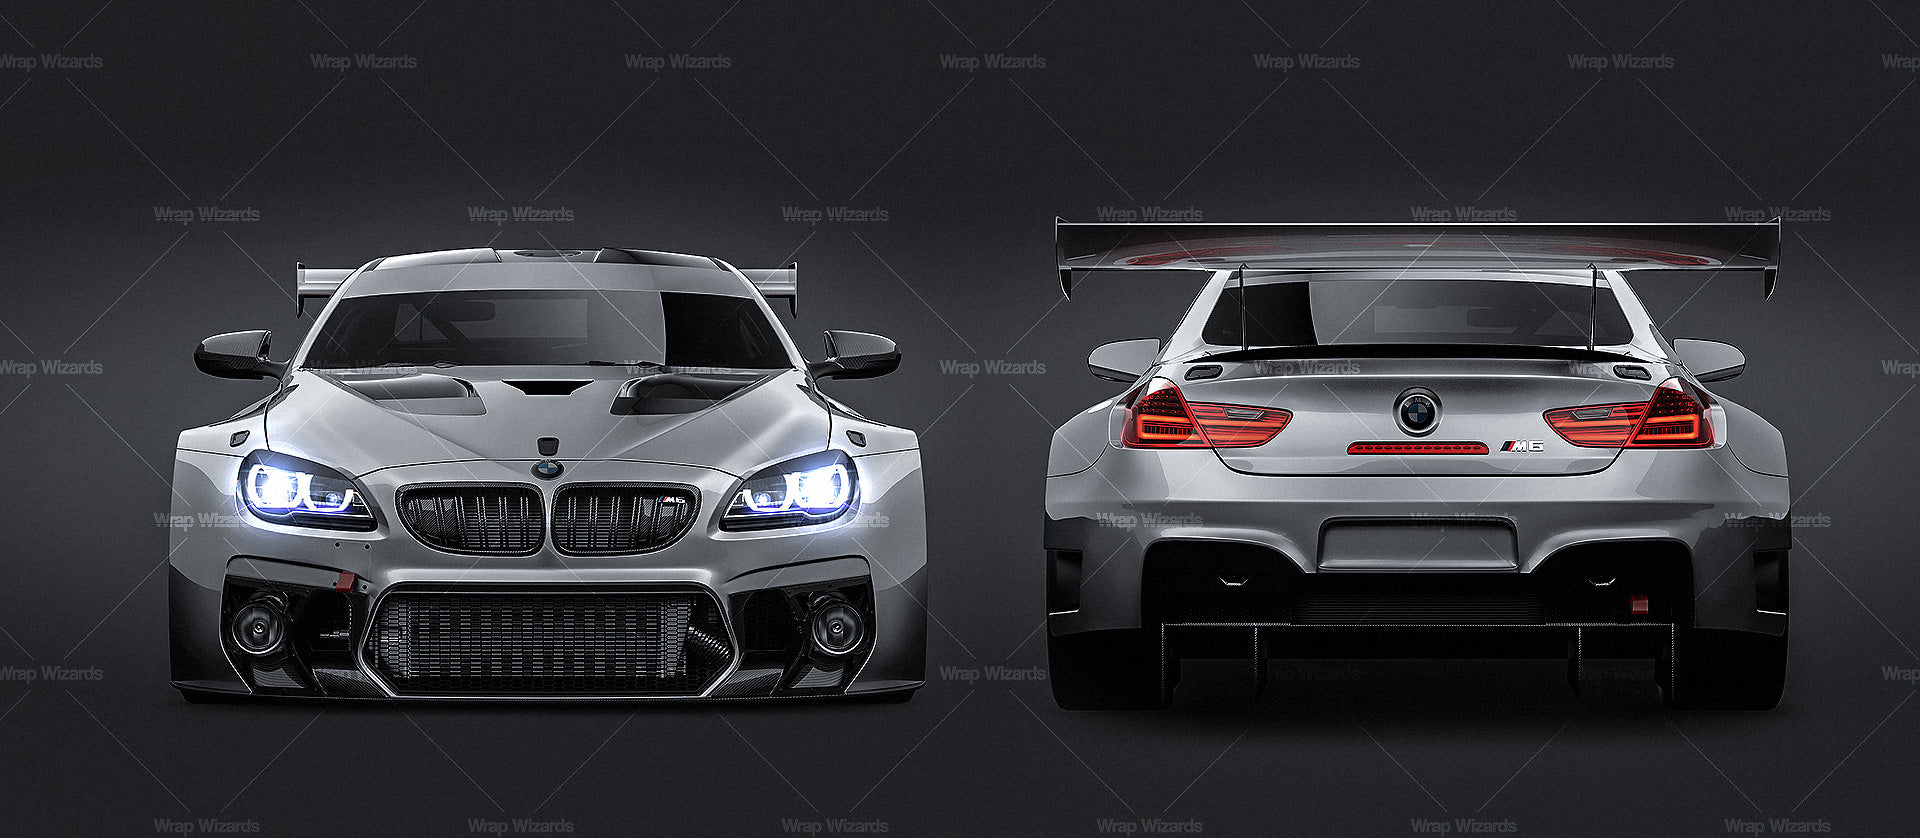 BMW M6 GT3 2016 - all sides Car Mockup Template.psd